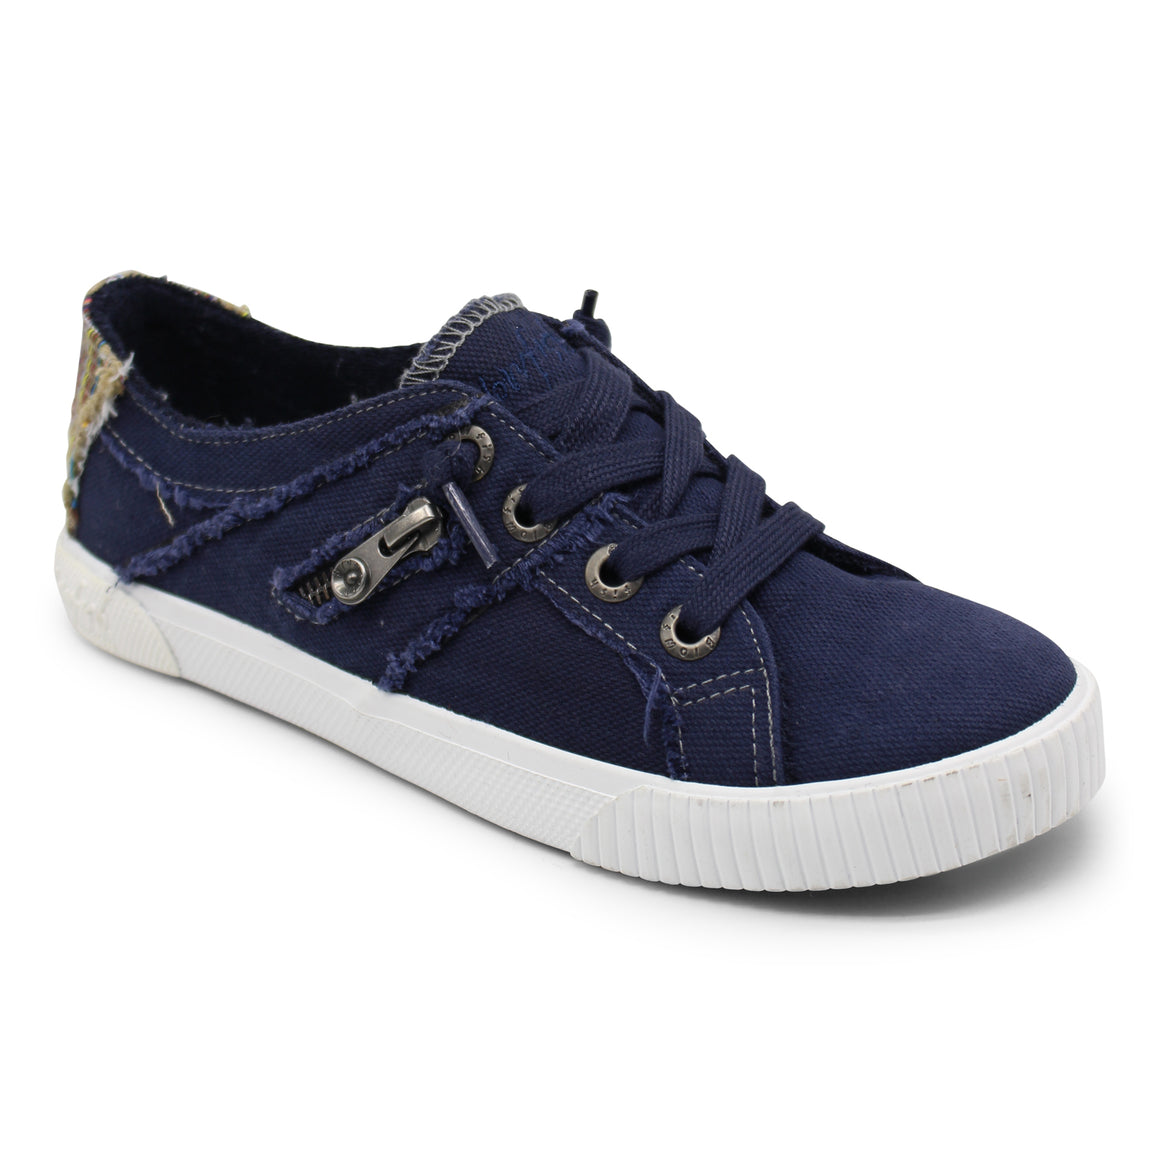 Blowfish Women's Fruit Lace Up Shoe ZS-0269 - Pure Navy - ShoeShackOnline